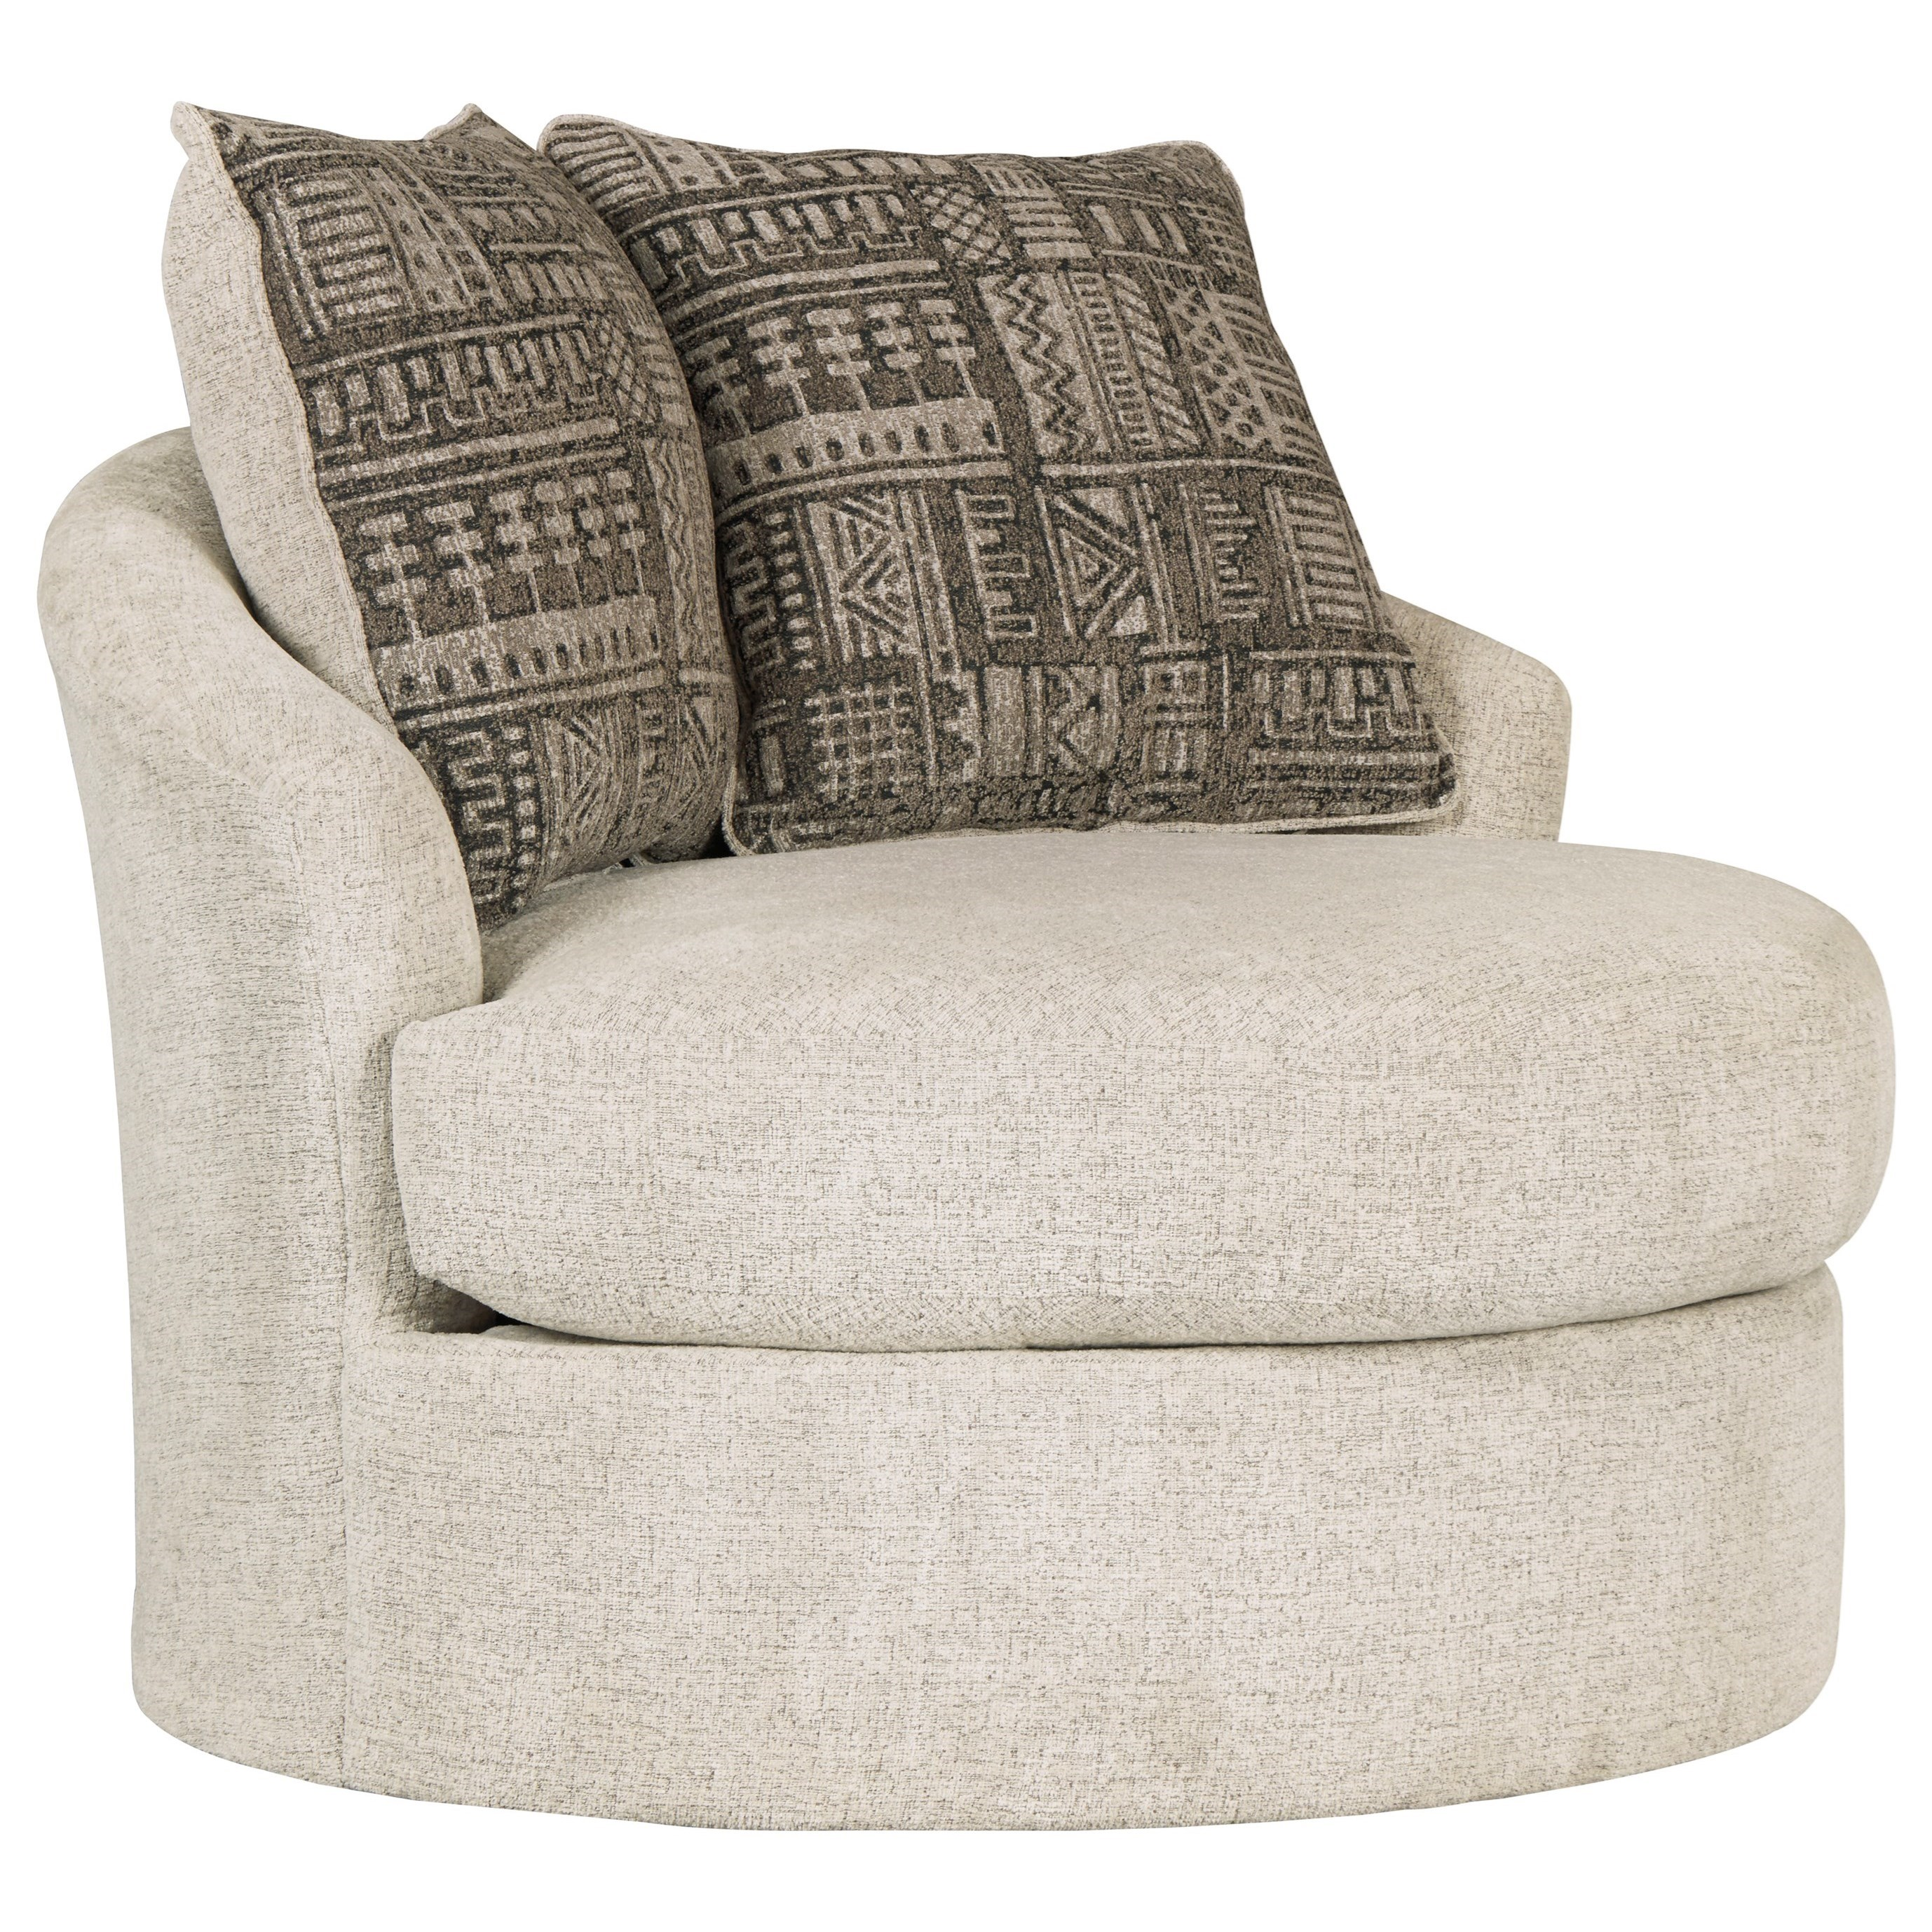 Soletren Soletren Swivel Accent Chair by Ashley at Morris Home